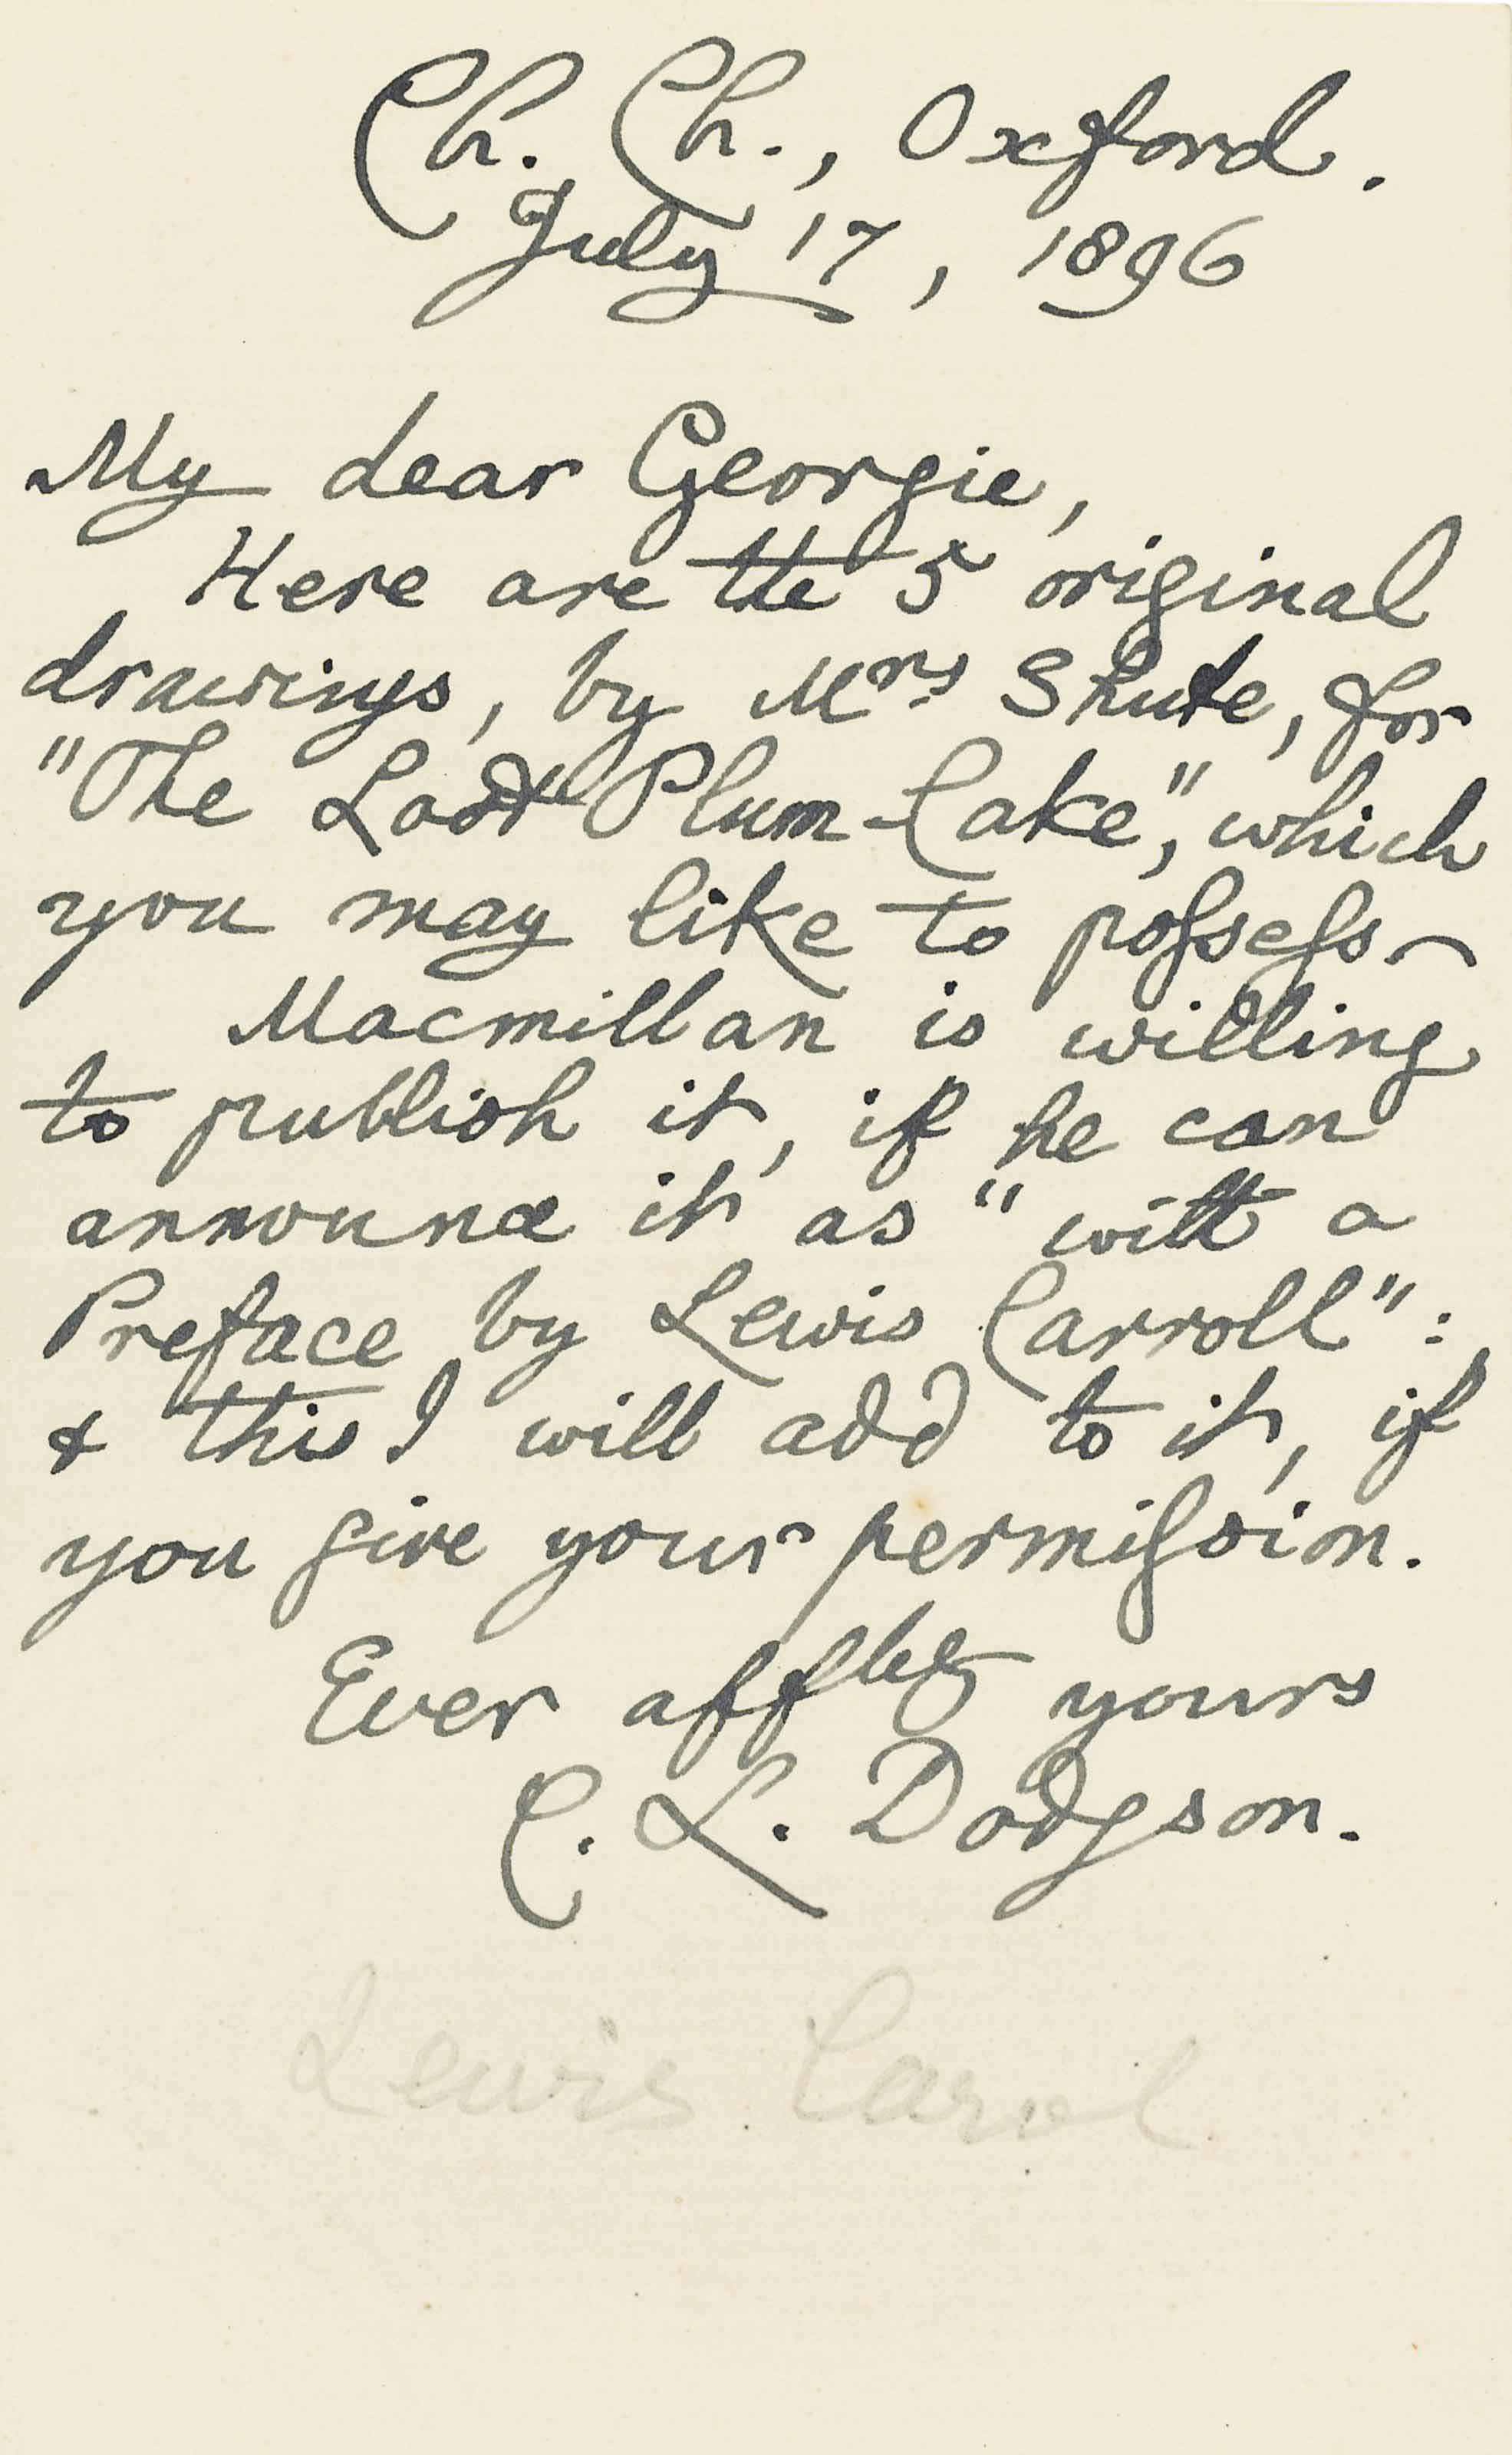 """DODGSON, Charles Lutwidge ('Lewis Carroll', 1832-1898). Autograph letter signed ('C. L. Dodgson') to 'Georgie' [his cousin, Georgina Allen], Christ Church, Oxford, 17 July 1896, referring to a set of illustrations for a book by Allen (no longer present), 'Here are the 5 original drawings, by Mrs Shute, for """"The Lost Plum-Cake"""", which you may like to possess', and adding 'Macmillan is willing to publish it, if he can announce it as """"with a Preface by Lewis Caroll"""": & this I will add to it, if you give your permission', one page, 8vo, bifolium; envelope."""